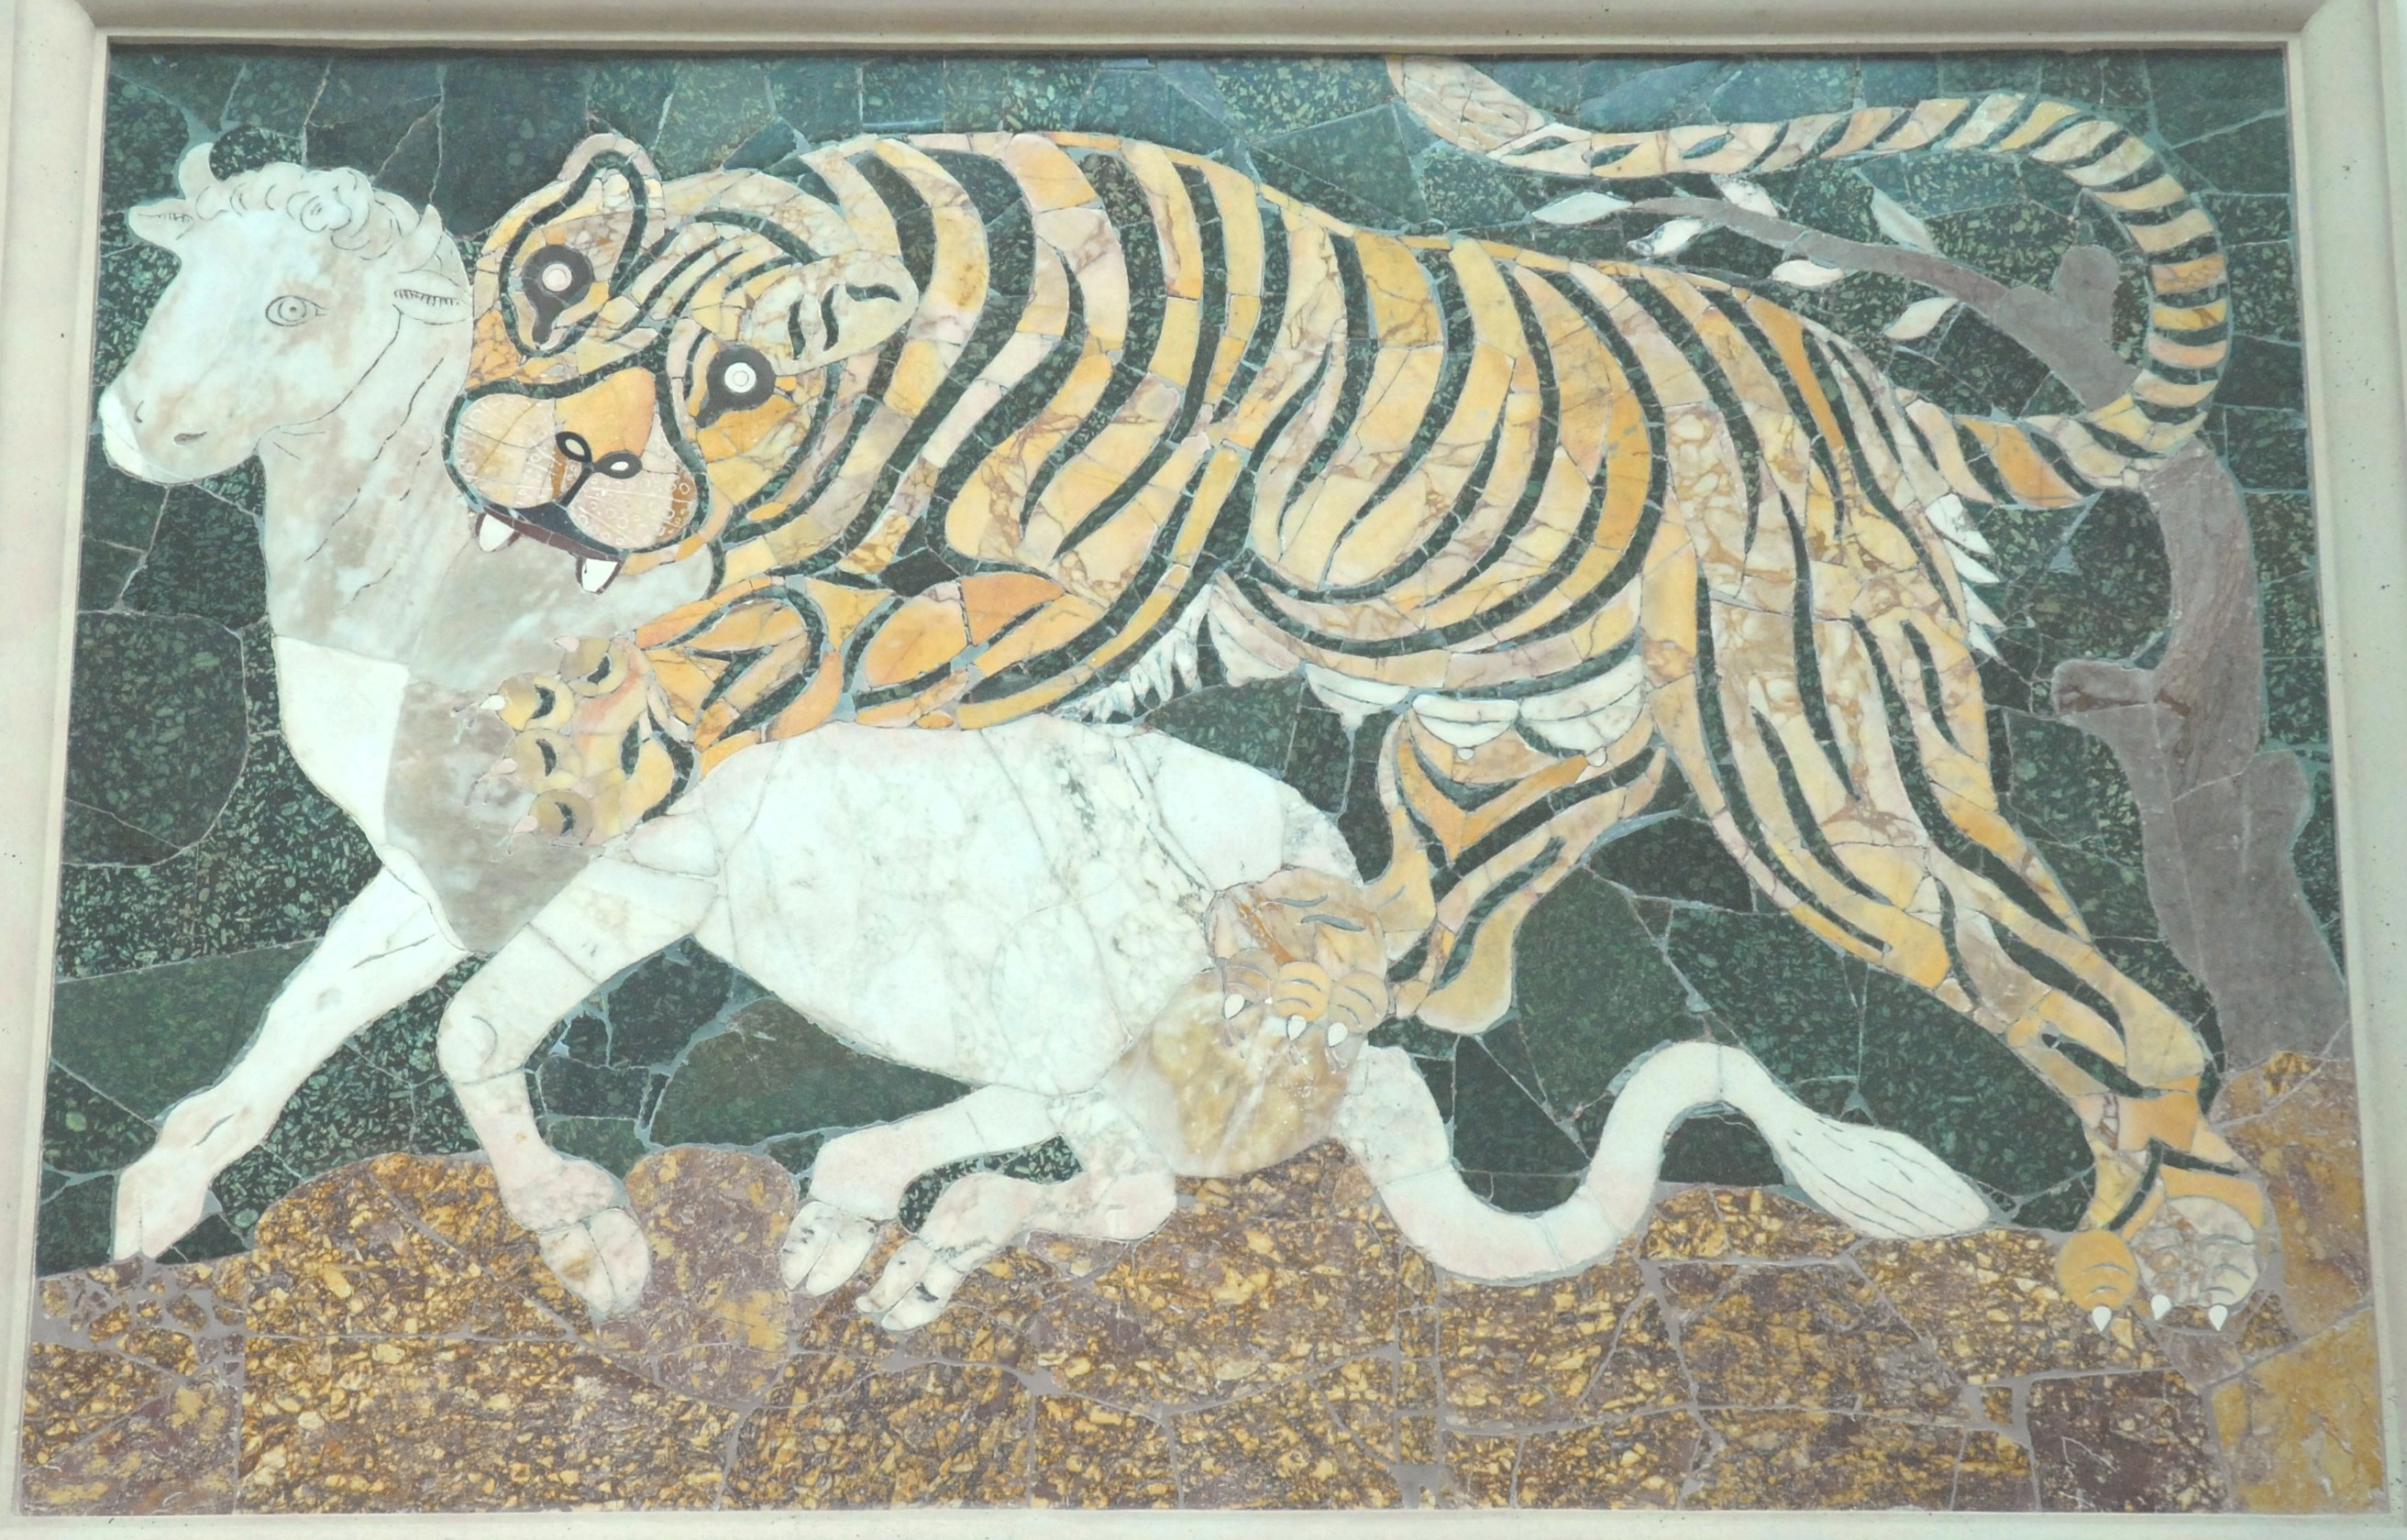 tiger mosaic, Basilica of Junius Bassus, Rome; photo J. Long 1 August 2006